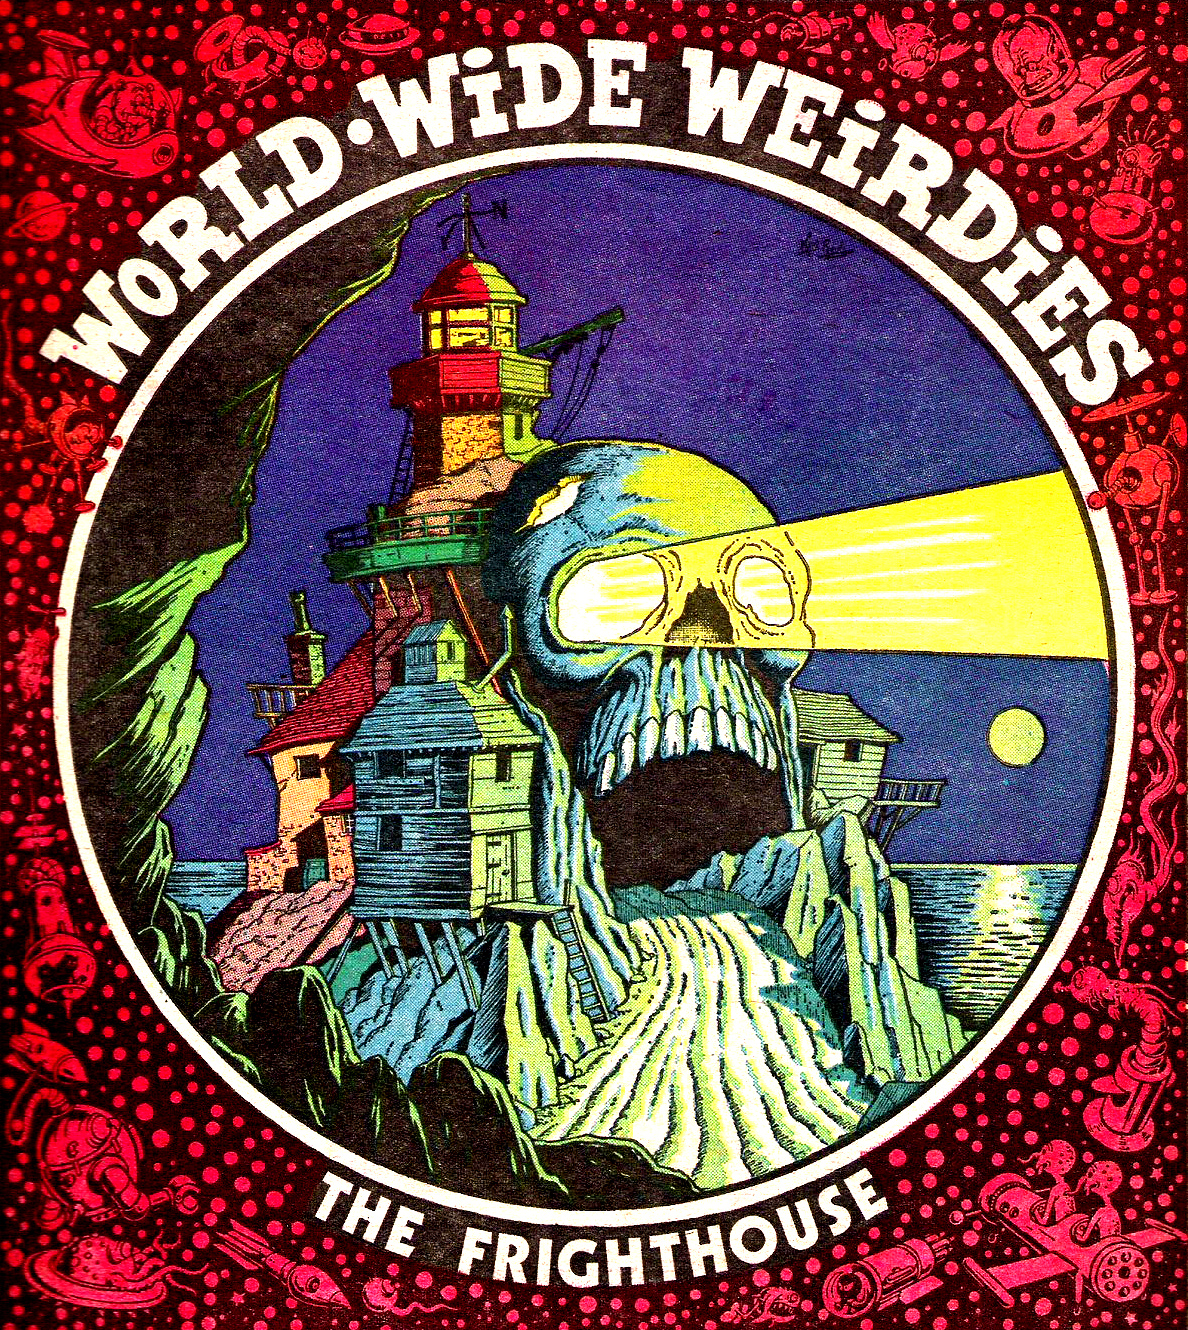 Ken Reid - World Wide Weirdies 58